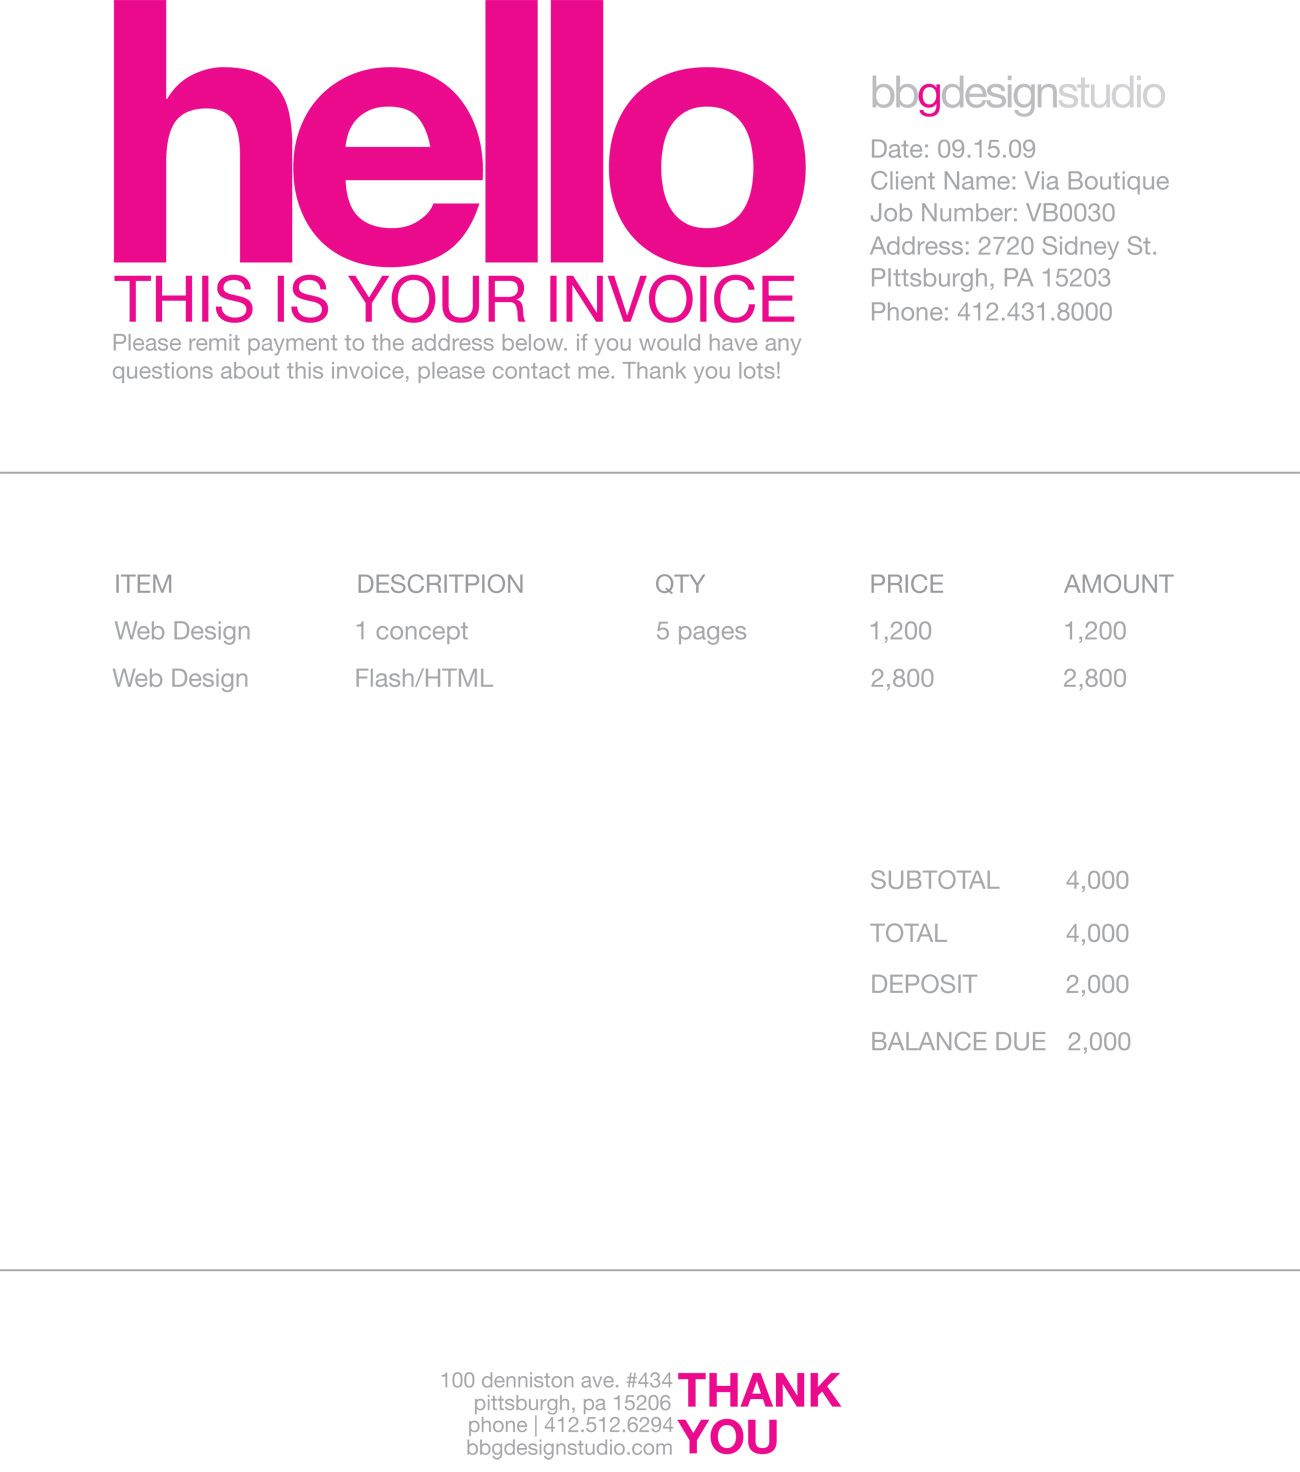 Shopdesignsus  Surprising  Images About Invoice Design On Pinterest With Inspiring Truck Invoice Prices Besides What Is Export Invoice Furthermore How To Write Invoice With Agreeable How Do You Invoice Someone On Paypal Also Shell E Invoicing In Addition Nch Express Invoice Free And Ford Raptor Invoice Price As Well As Invoice Reminder Template Additionally Fake Paypal Invoice Generator From Pinterestcom With Shopdesignsus  Inspiring  Images About Invoice Design On Pinterest With Agreeable Truck Invoice Prices Besides What Is Export Invoice Furthermore How To Write Invoice And Surprising How Do You Invoice Someone On Paypal Also Shell E Invoicing In Addition Nch Express Invoice Free From Pinterestcom